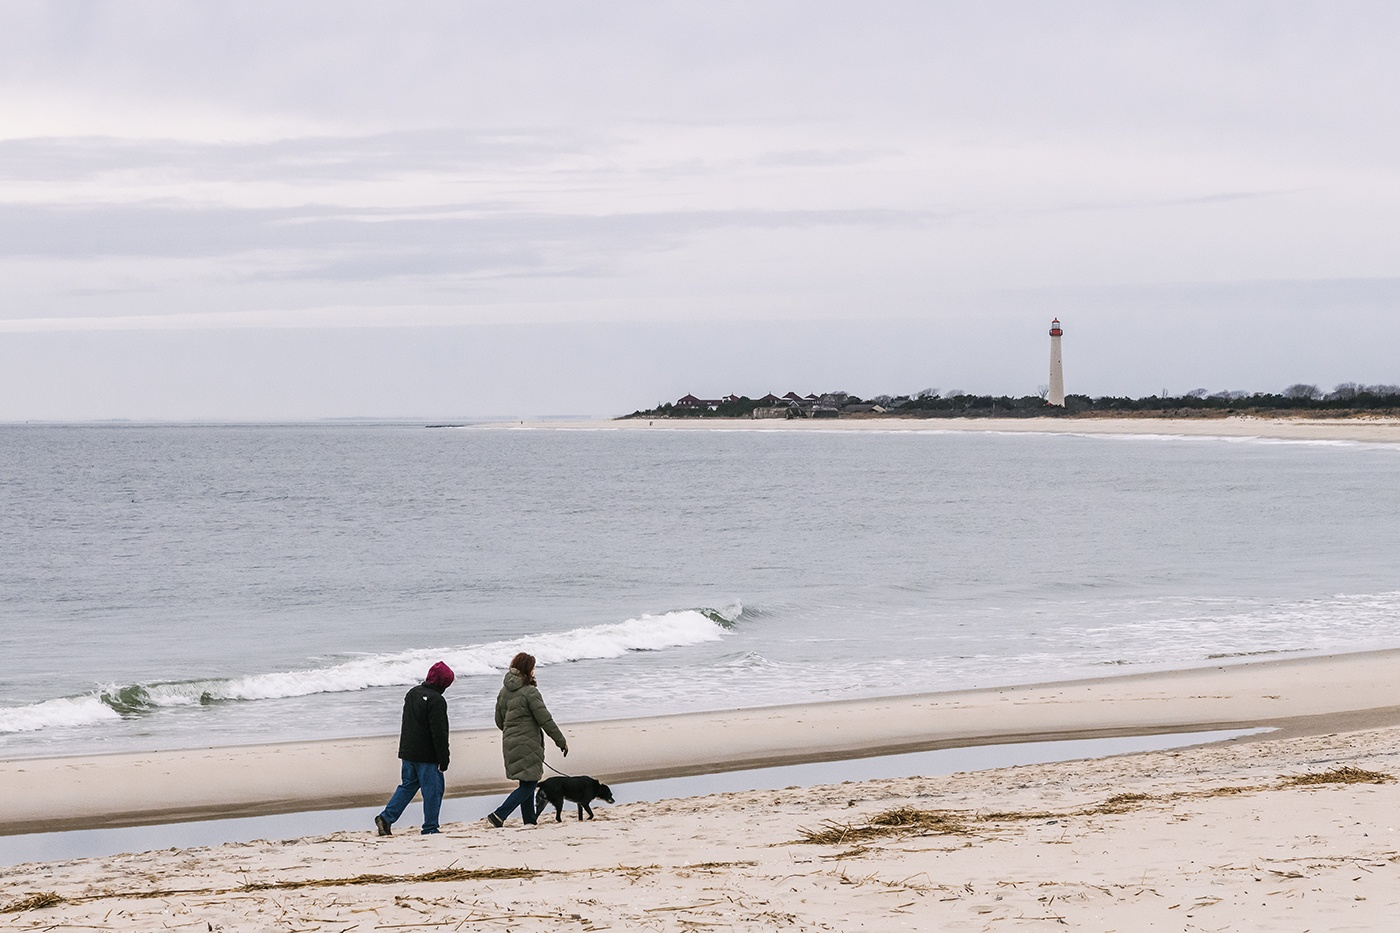 Two people walking with their dog on the beach on a cloudy day with the Cape May Lighthouse in the distance.